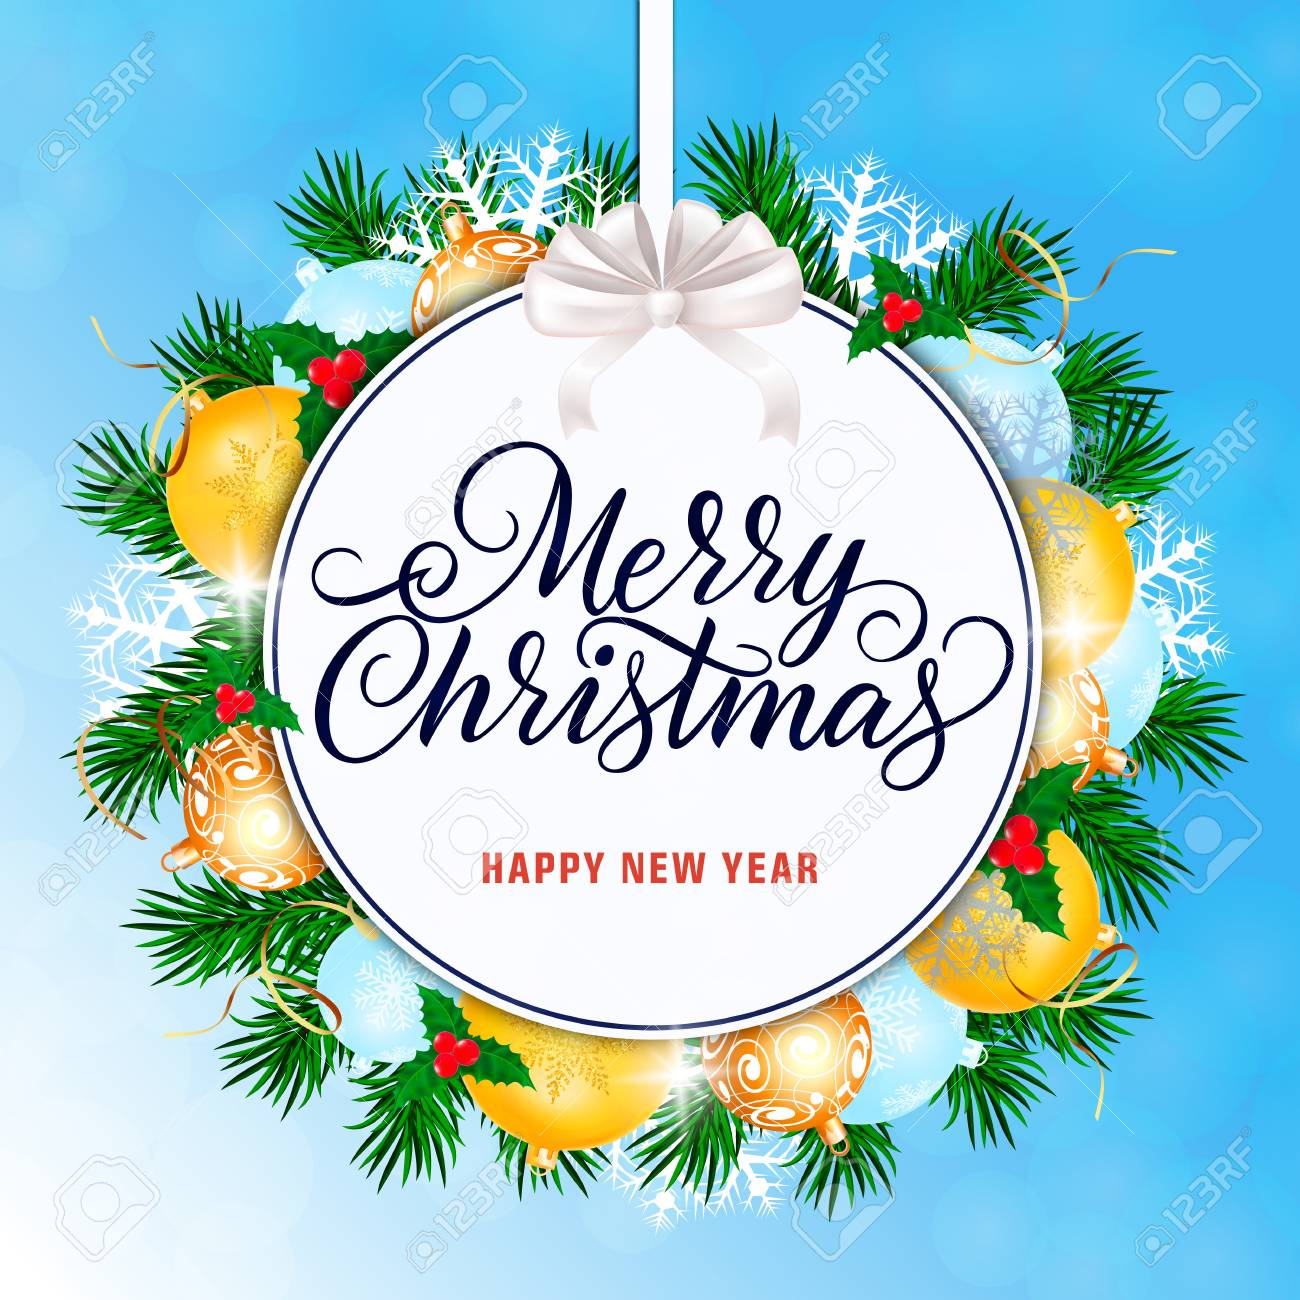 merry christmas and happy new year banner royalty free cliparts vectors and stock illustration image 91341175 merry christmas and happy new year banner